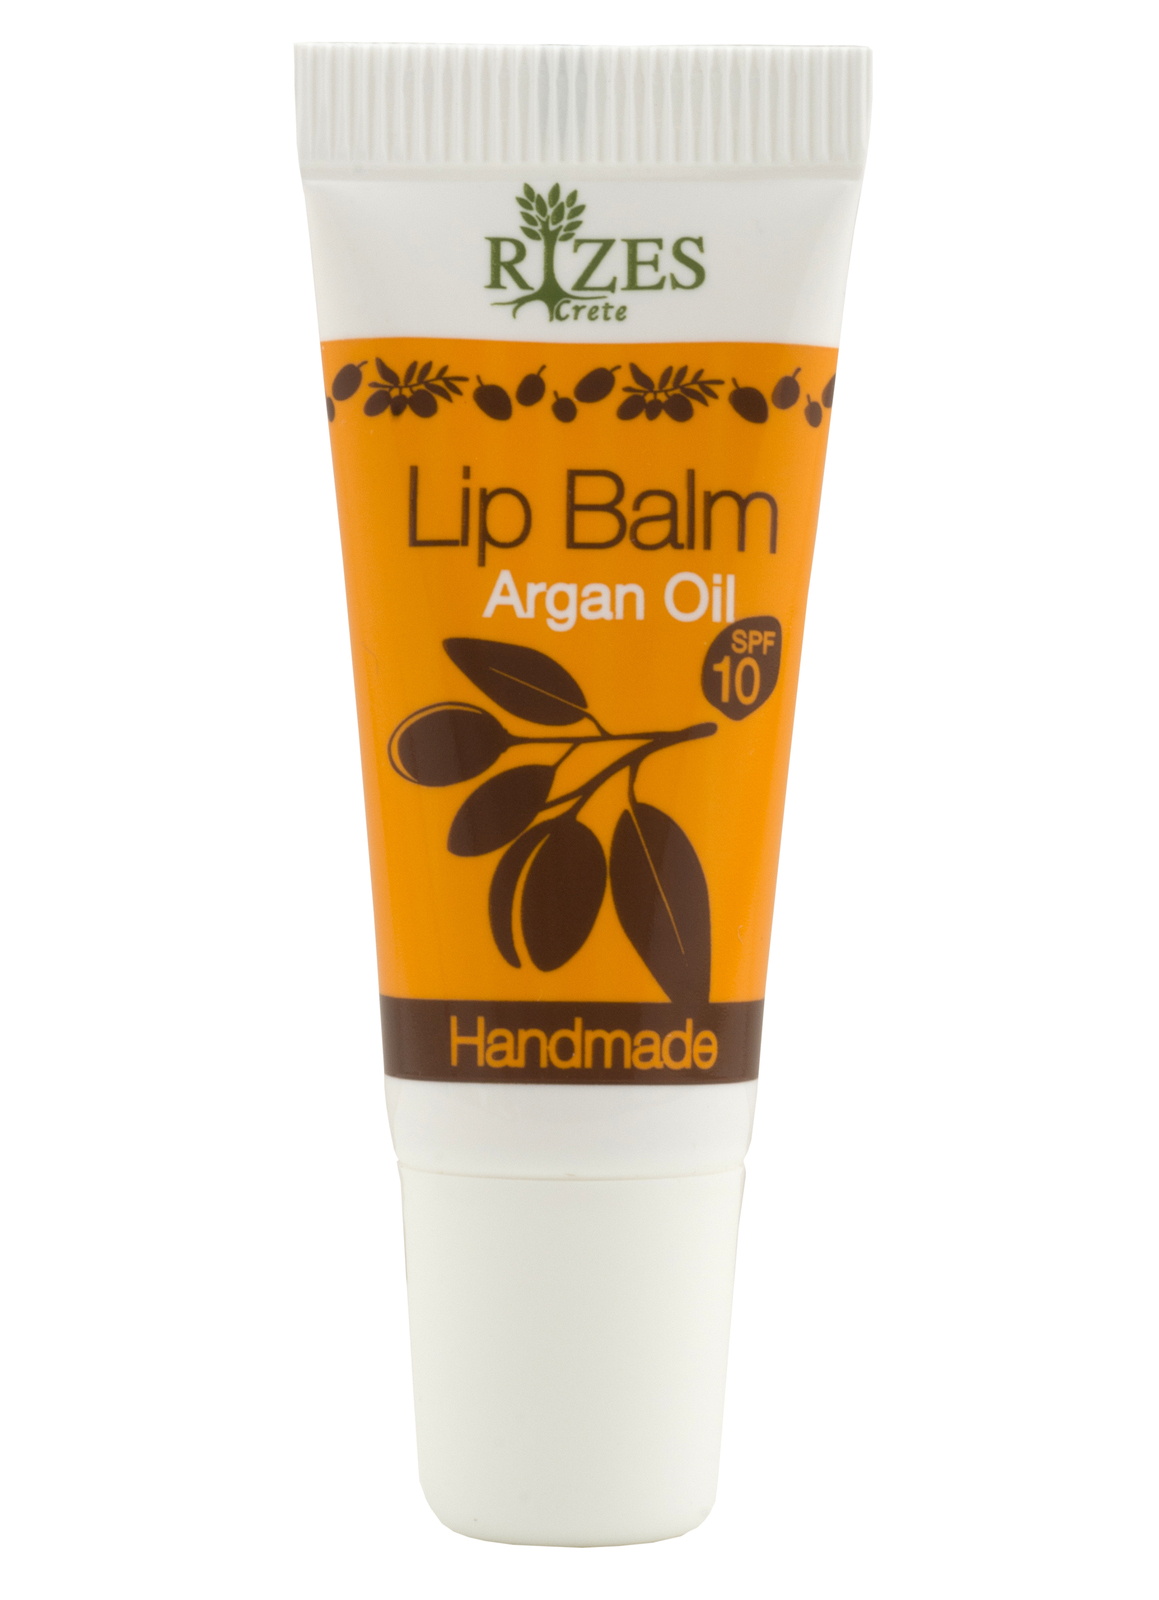 Lip balm with spf and argan oil without vaseline